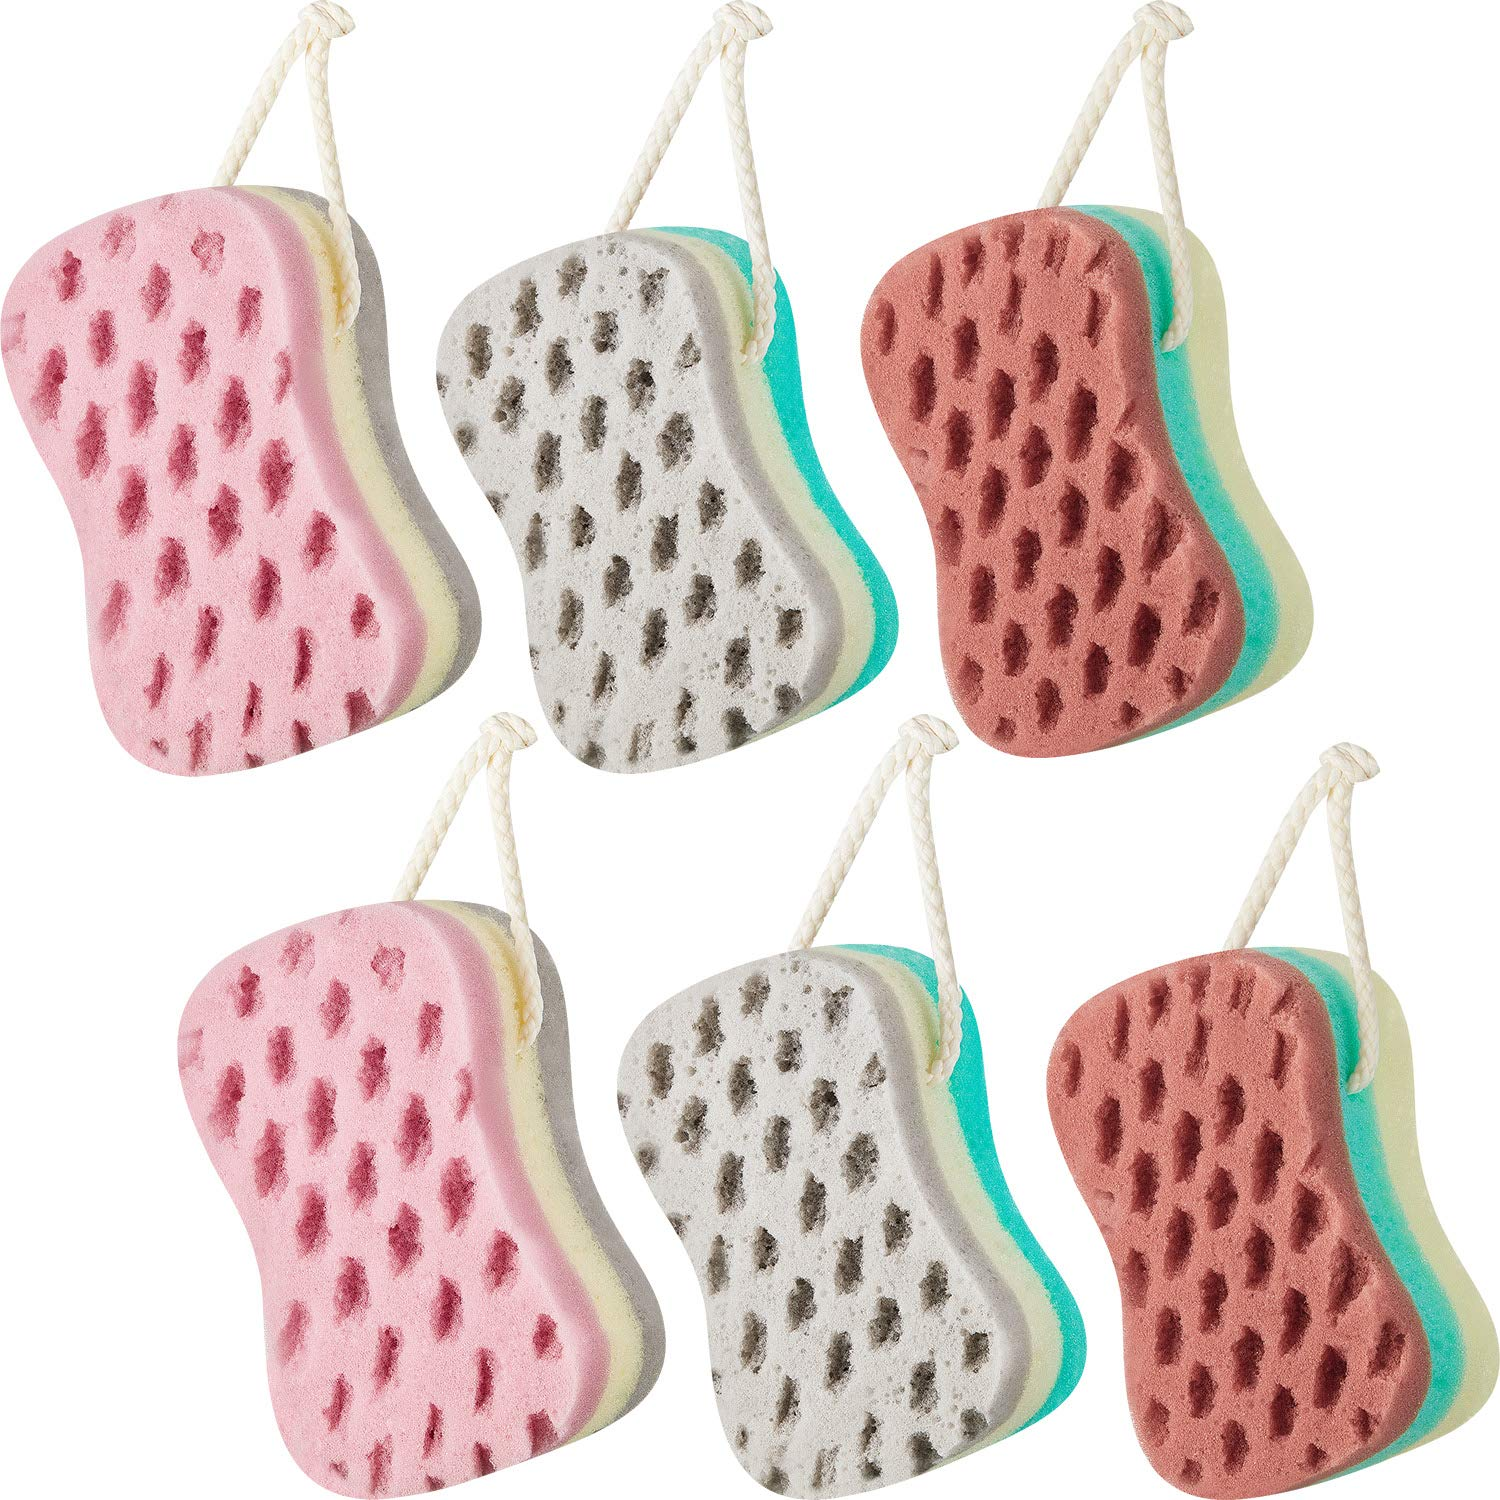 Max 86% OFF 6 Pieces depot Soft Bath Sponge Nat Exfoliating Shower Soothing